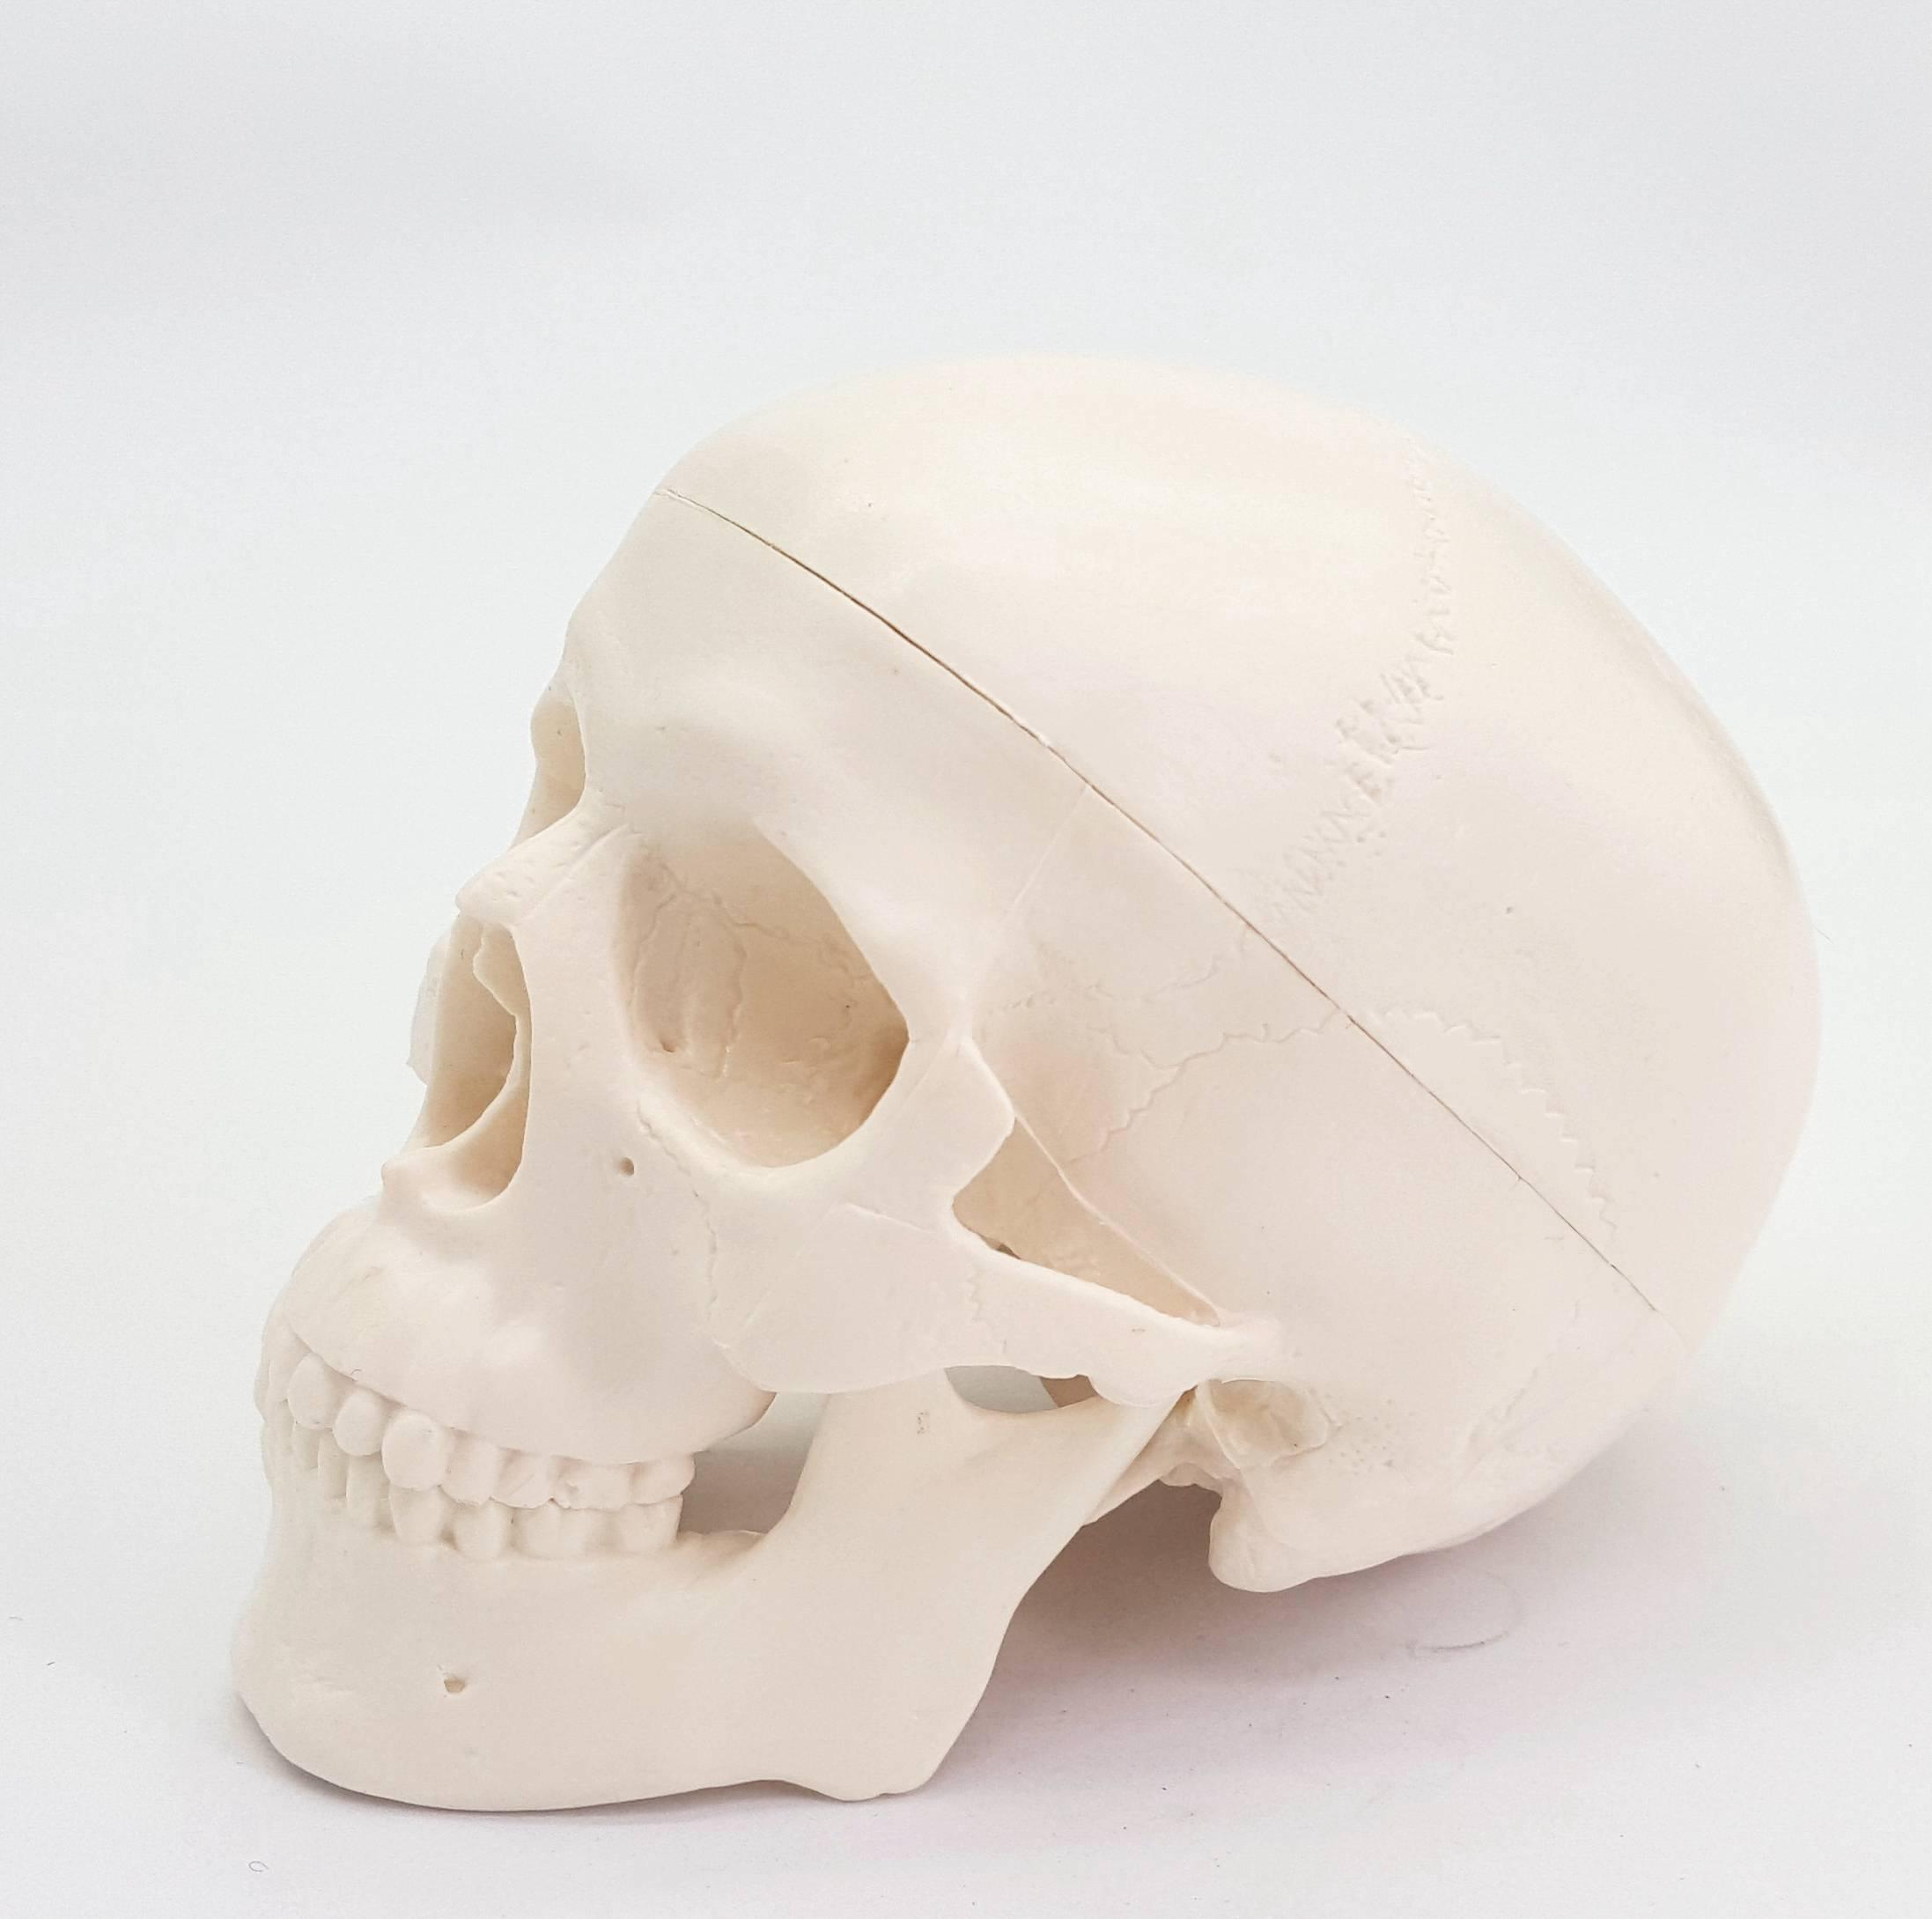 PVC Mini Skull Human Anatomical Anatomy Head Medical Model Convenient 92x99x71mm